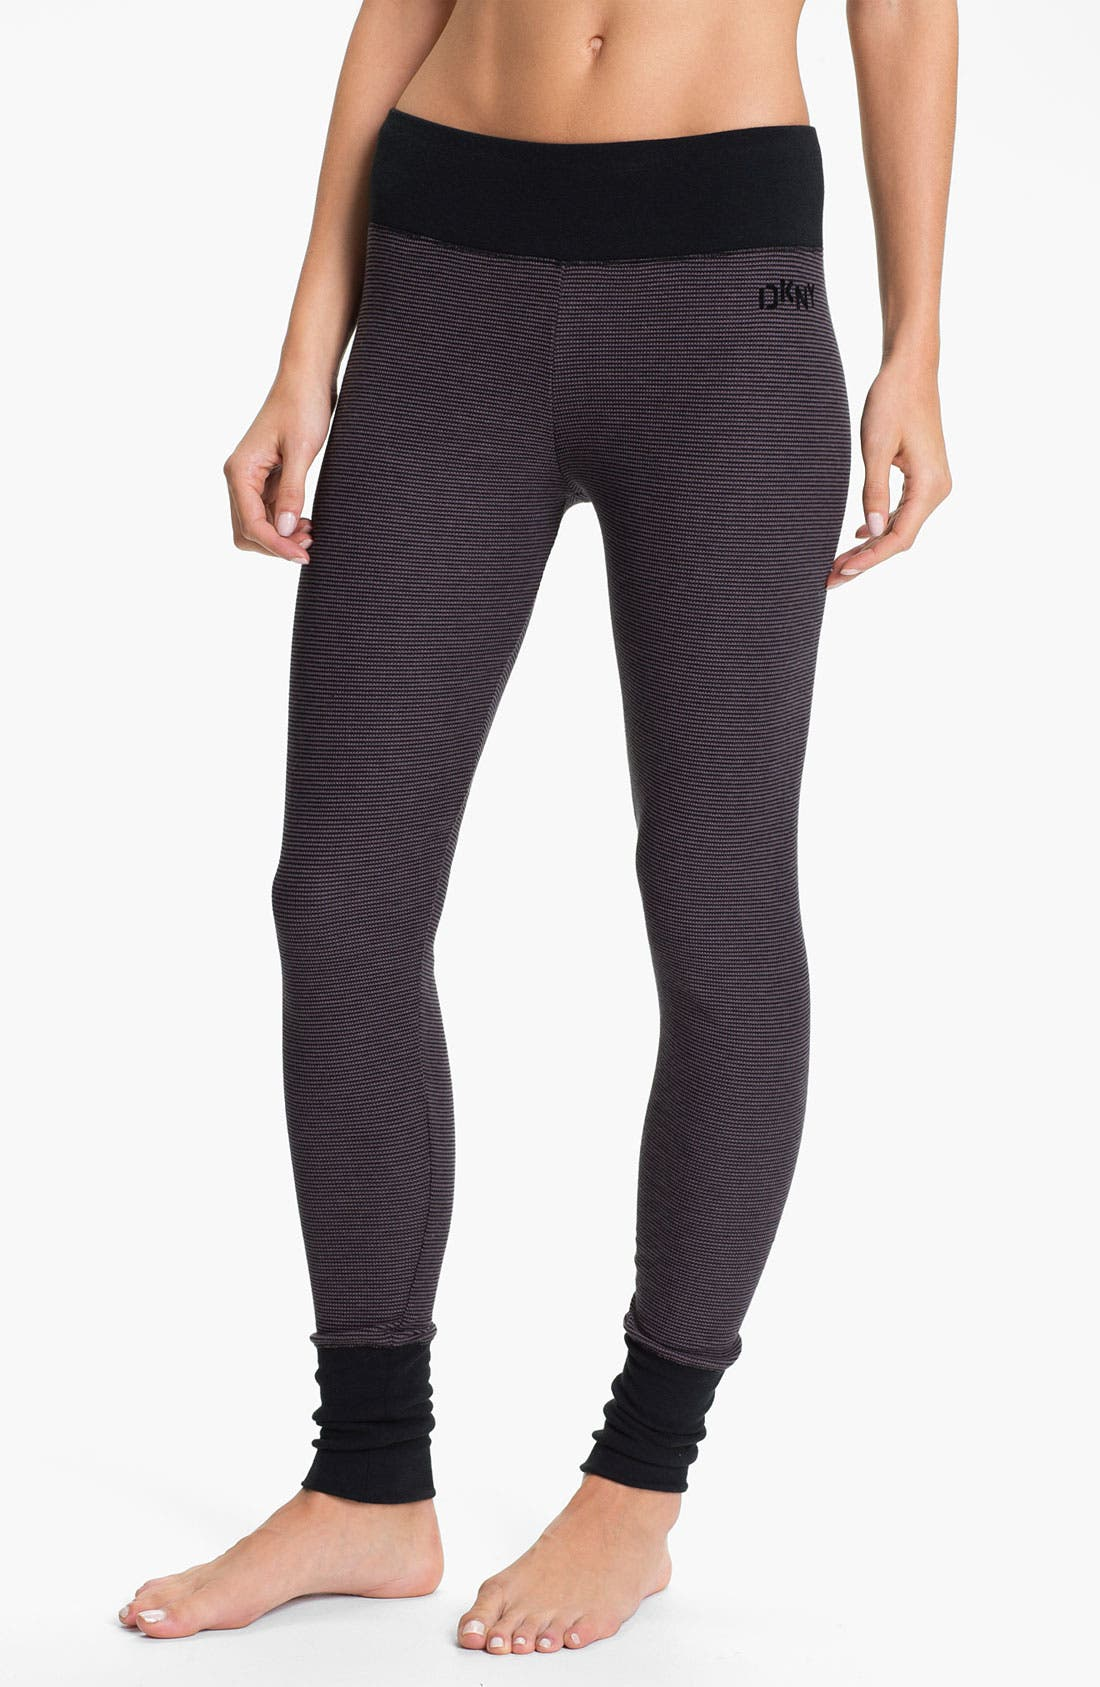 Main Image - DKNY Base Layer Cuff Leggings